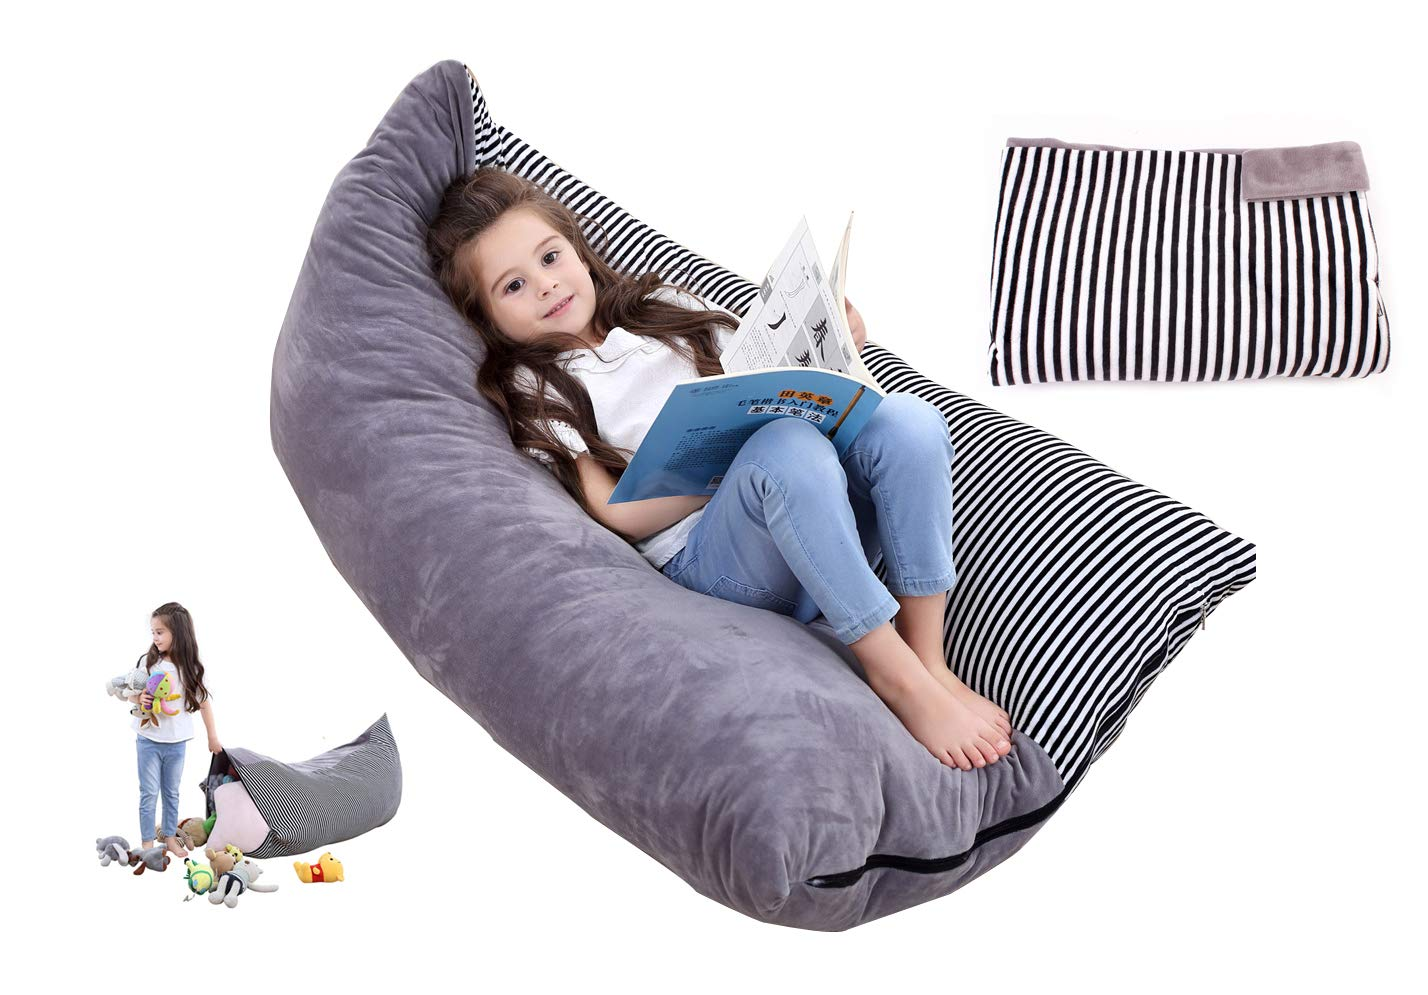 Stuffed Animal Storage Bean Bag Furniture Reading Chair Bean Bag Chair Cover Large Furry Bean Bag for Kids, Toddler, Adult